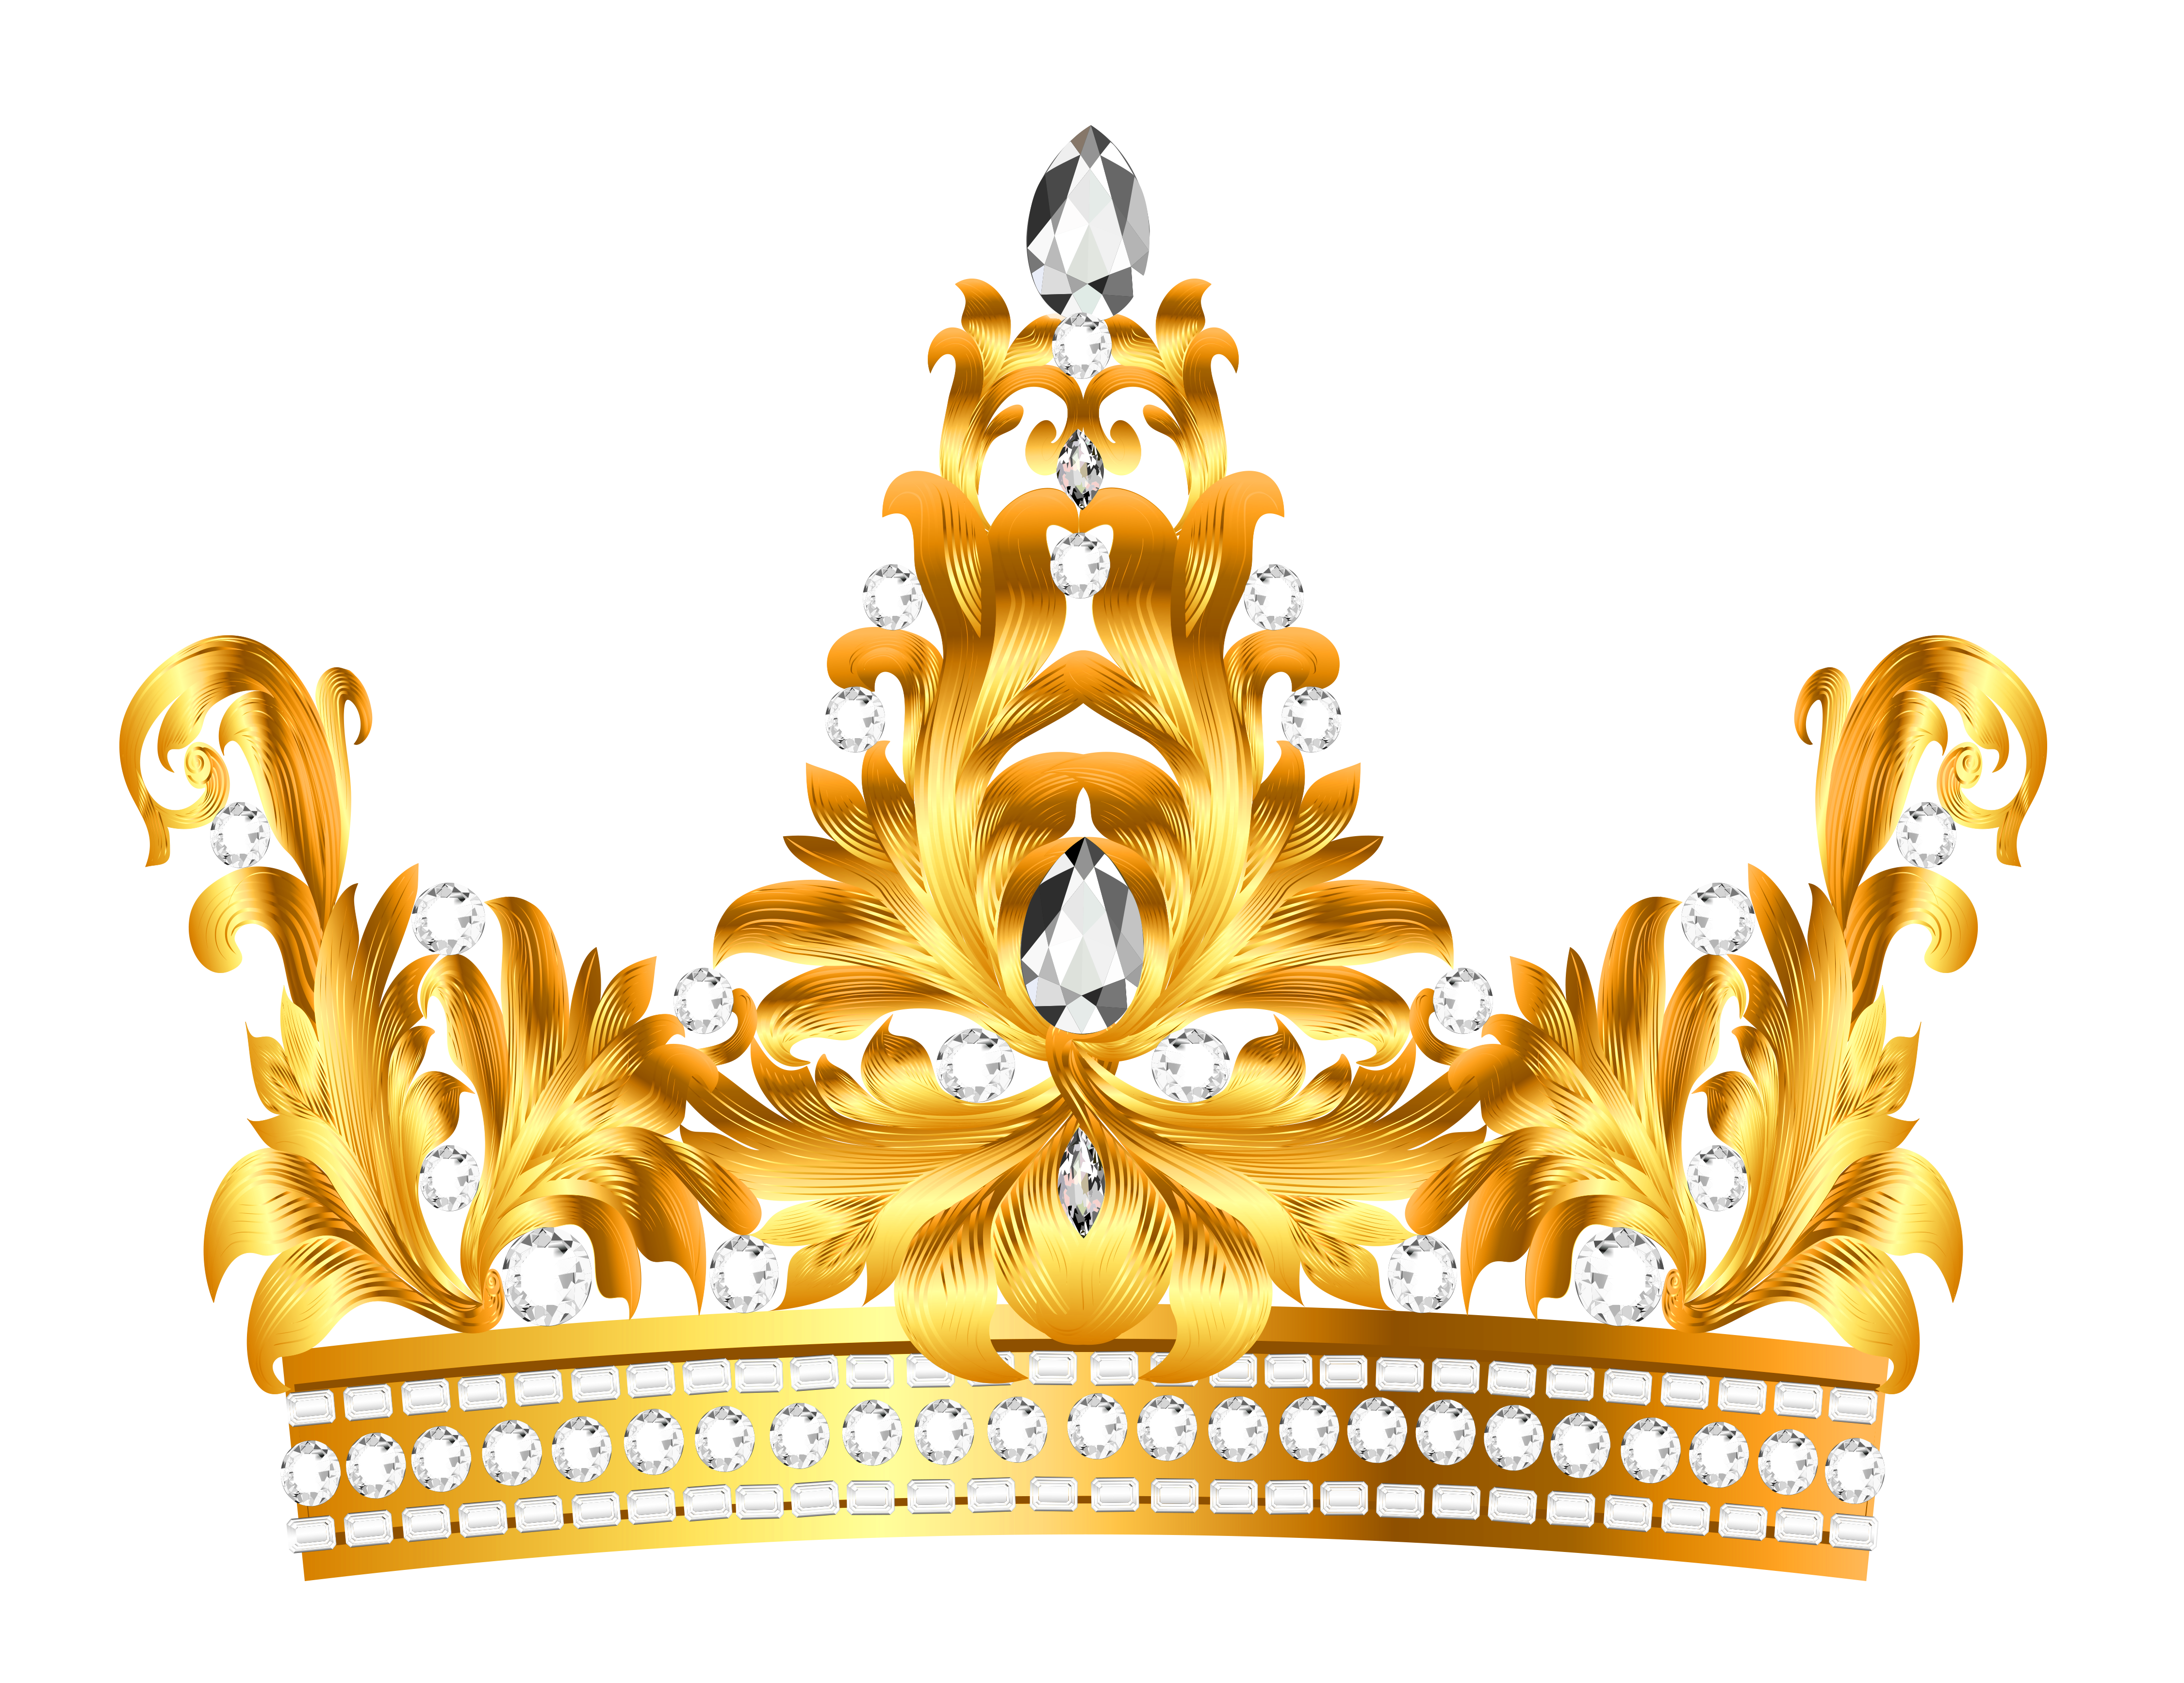 Gold bling crown clipart svg royalty free library Gold and Diamonds Crown PNG Clipart | Clip art | Pinterest | Crown ... svg royalty free library